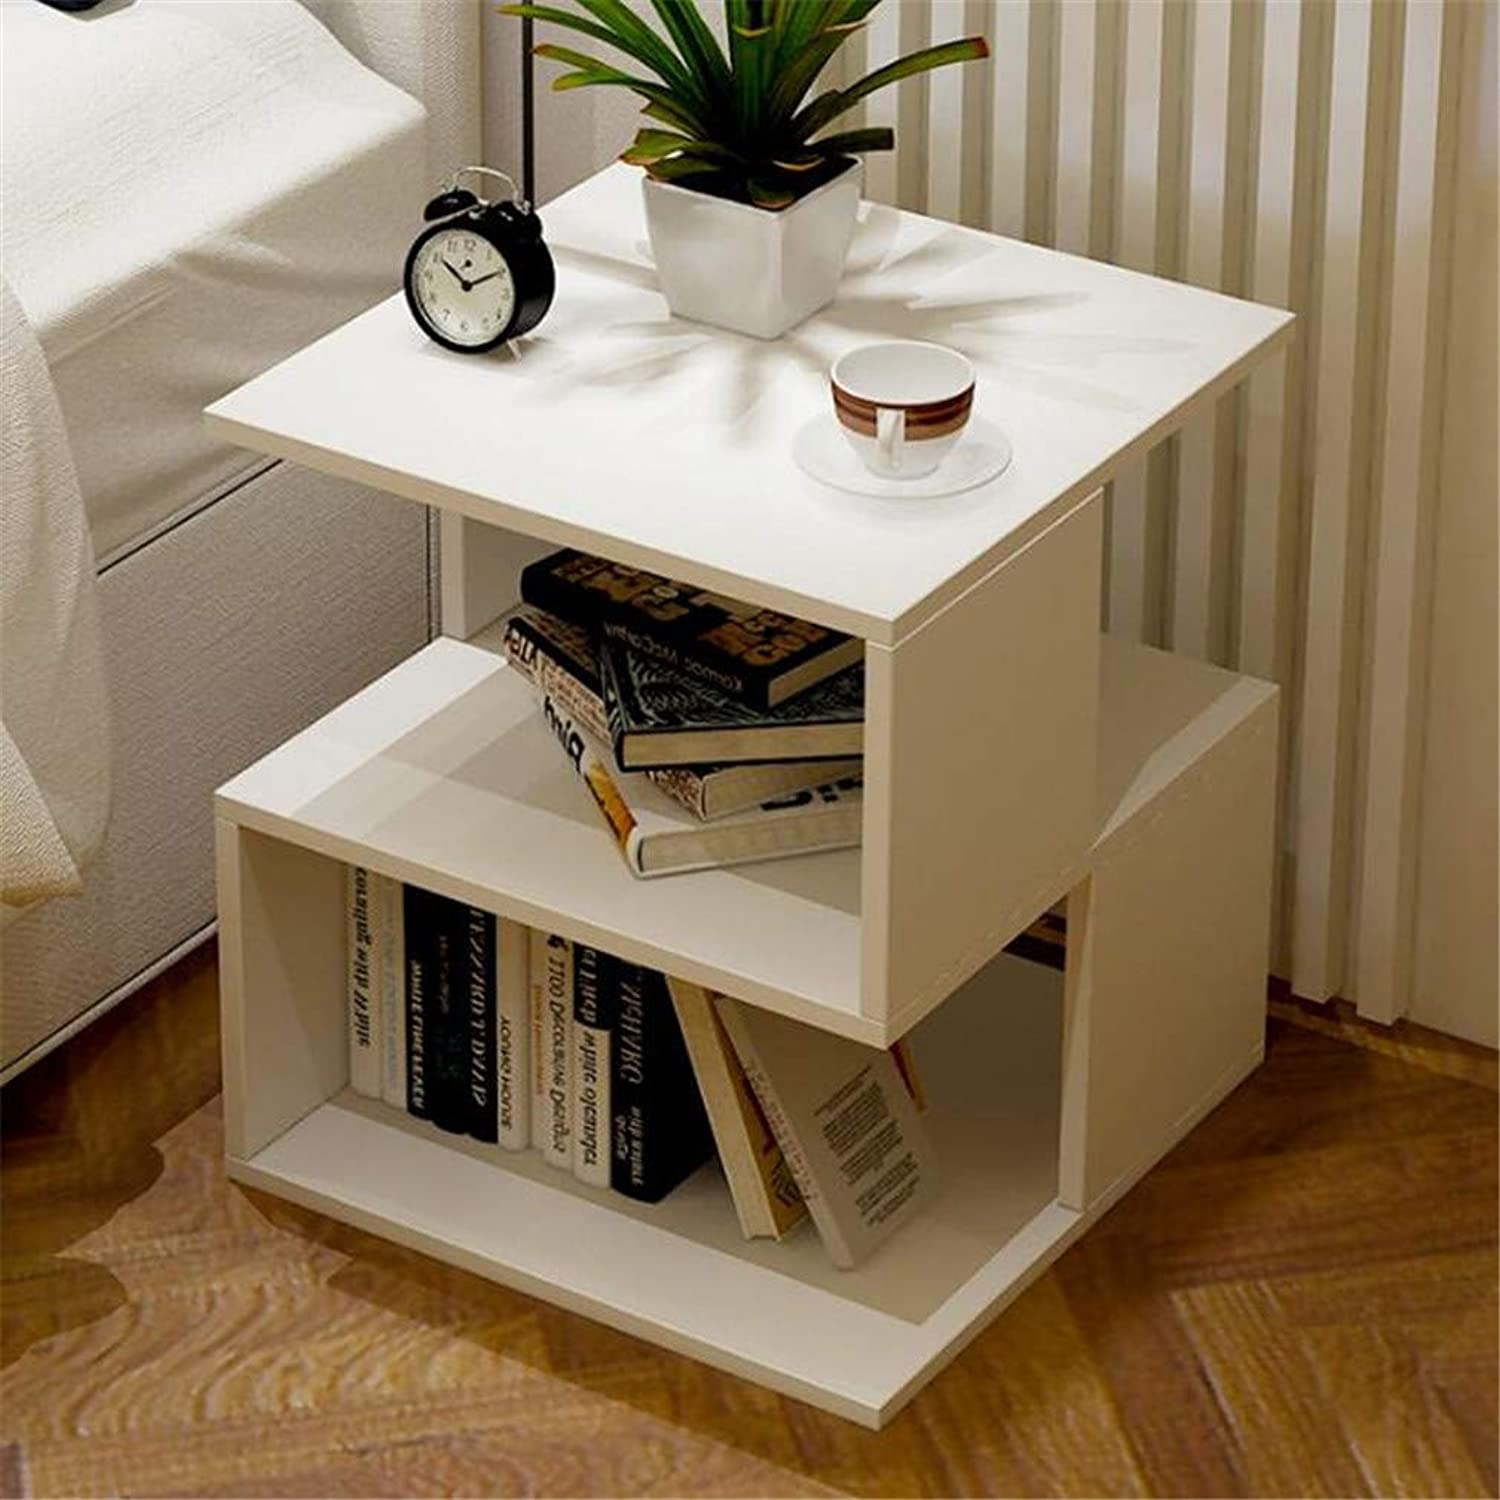 Simple Small Table Bedside Table Mini Mobile Small Coffee Table Living Room Sofa Bedroom 40x40x43.6cm C